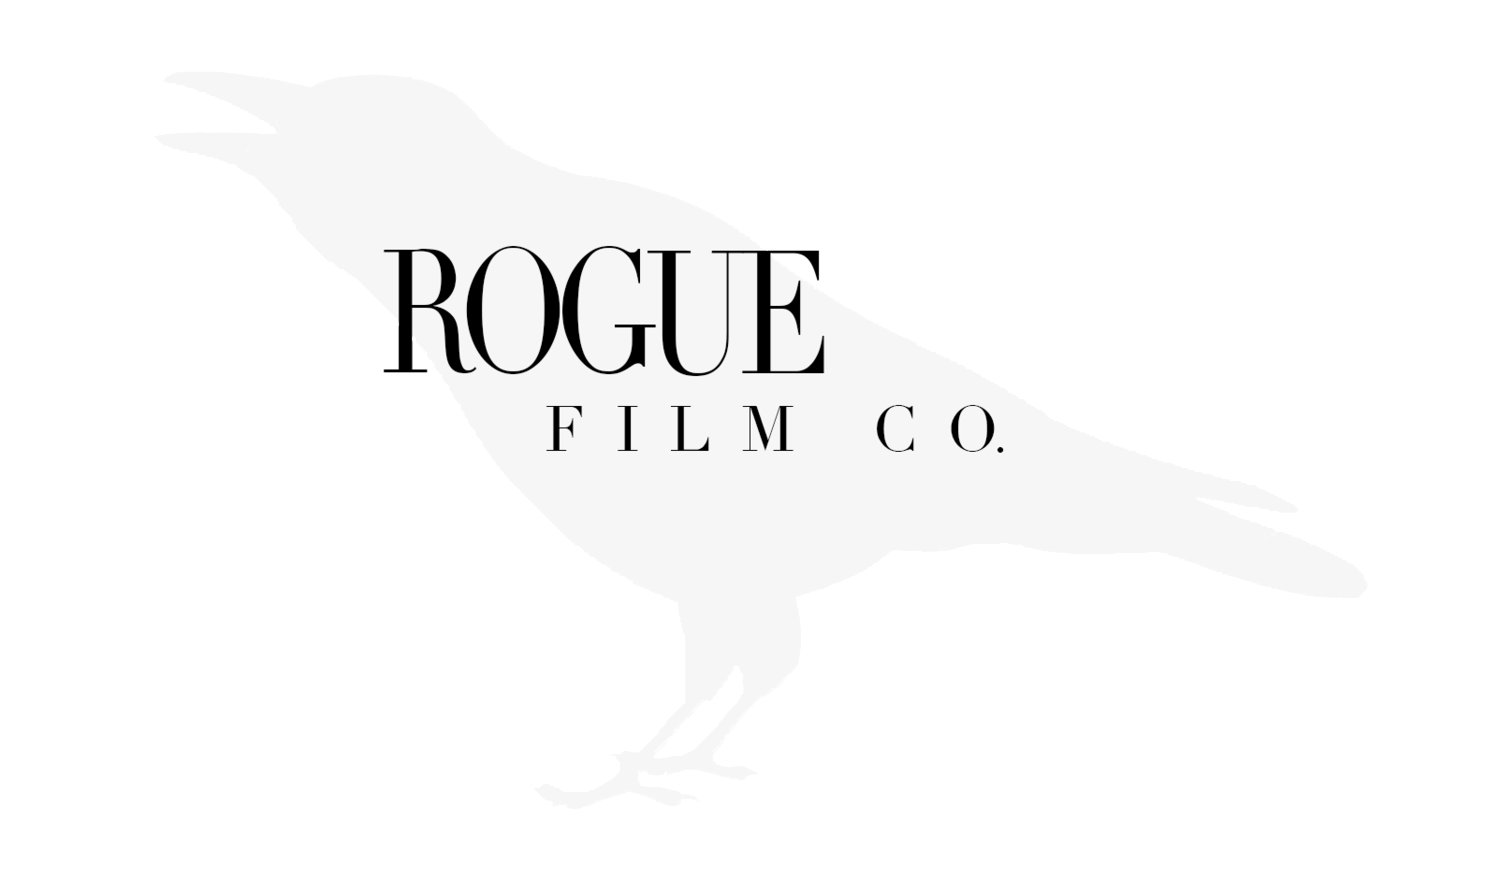 ROGUE Film Co.